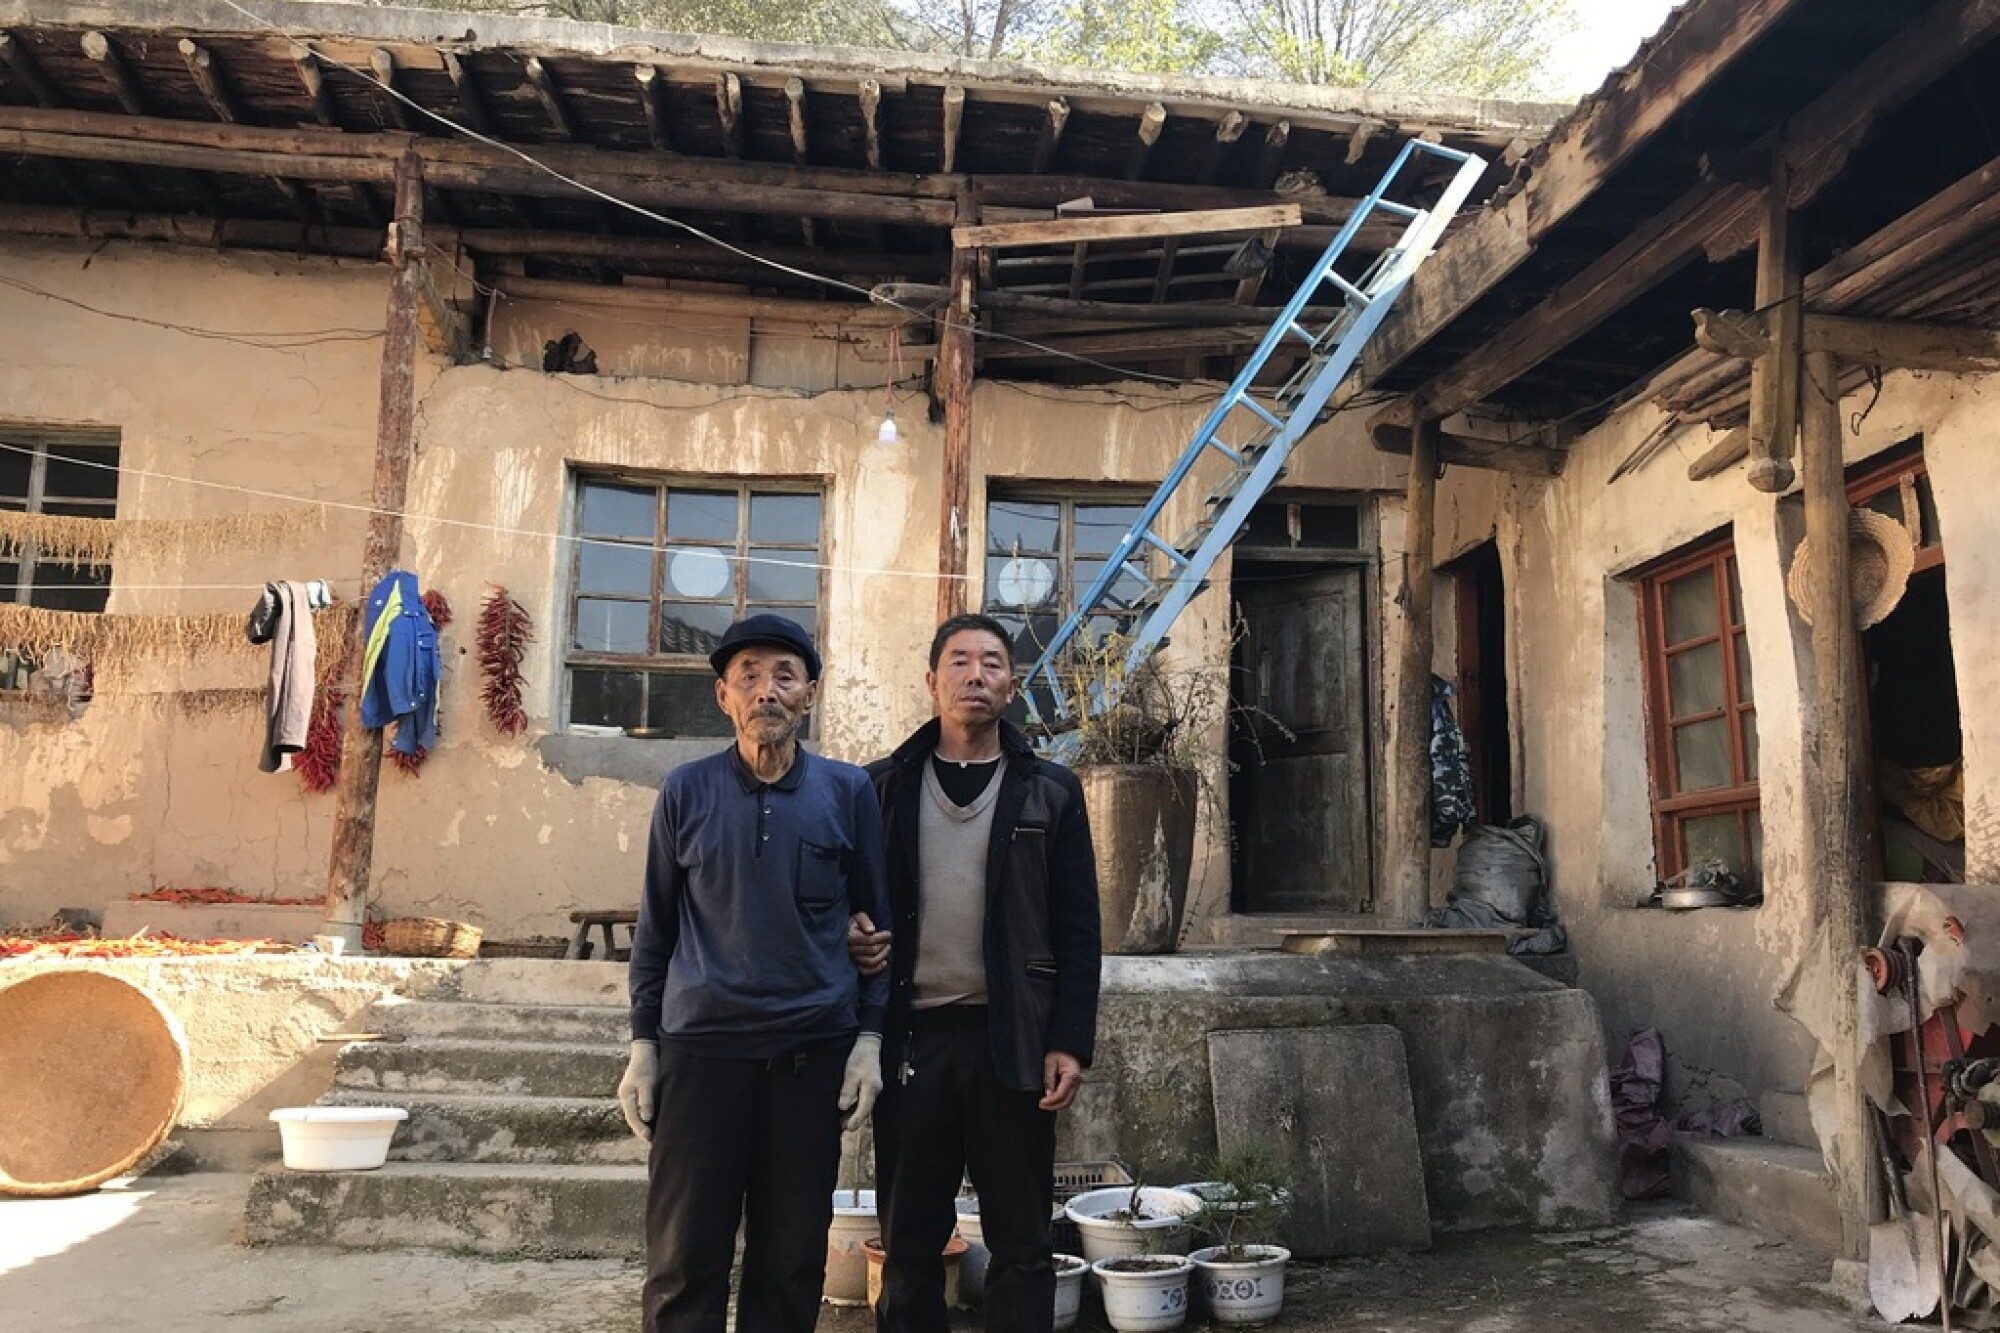 Yang Qinglai and his son Yang Jiacun are among a handful of residents still living in Lianghekou, China